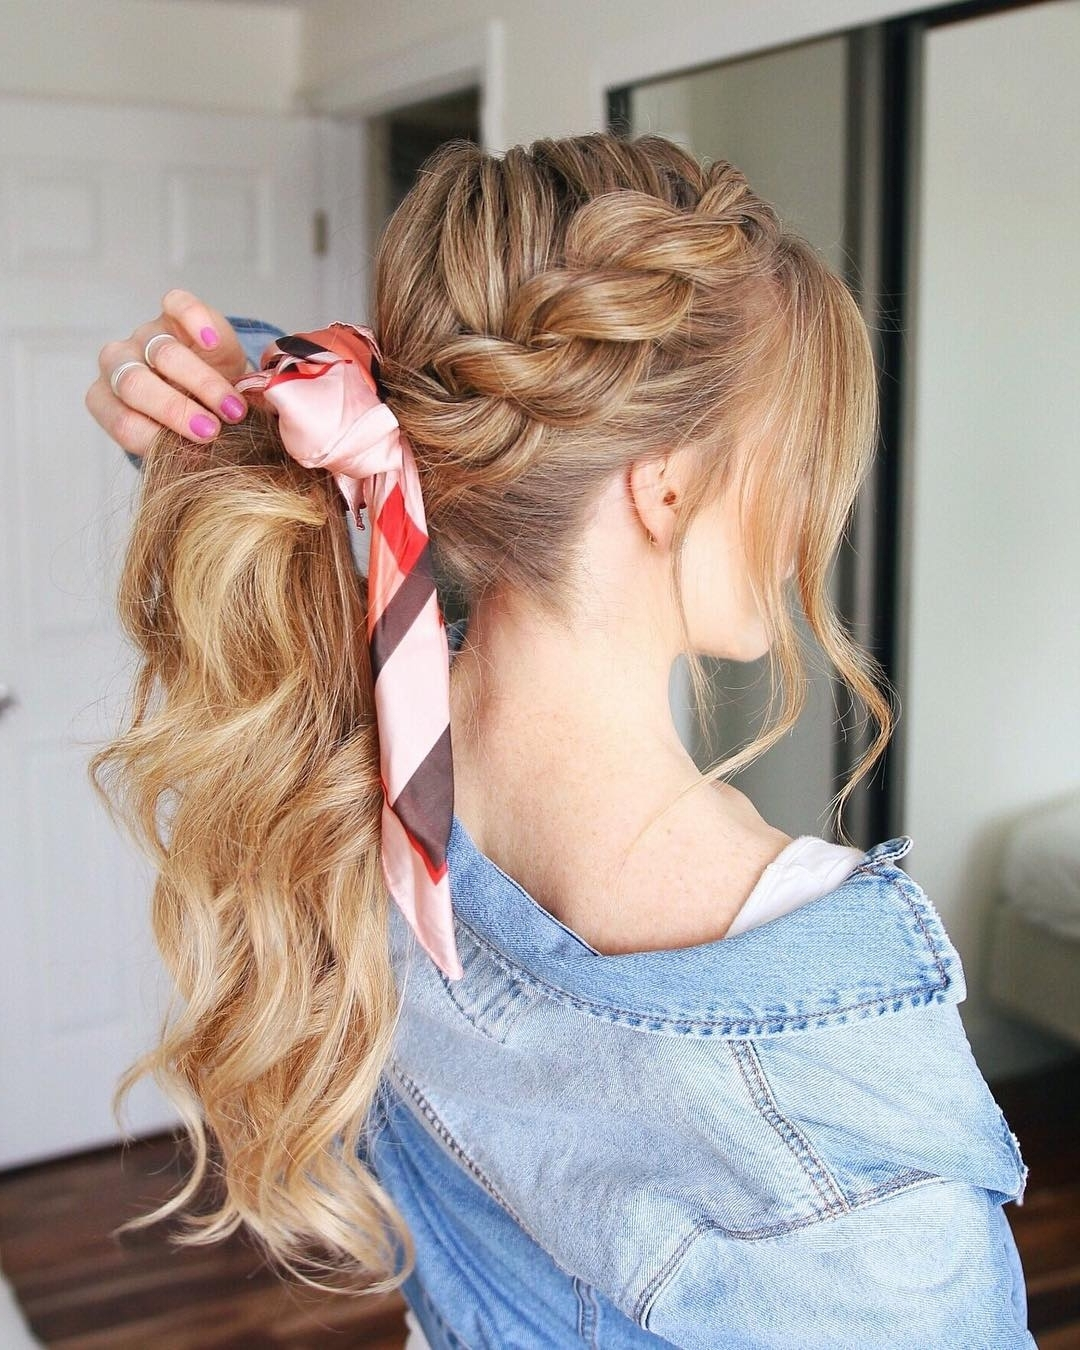 10 Creative Ponytail Hairstyles For Long Hair, Summer Hairstyle Intended For Most Current Blonde Flirty Teased Ponytail Hairstyles (View 16 of 20)